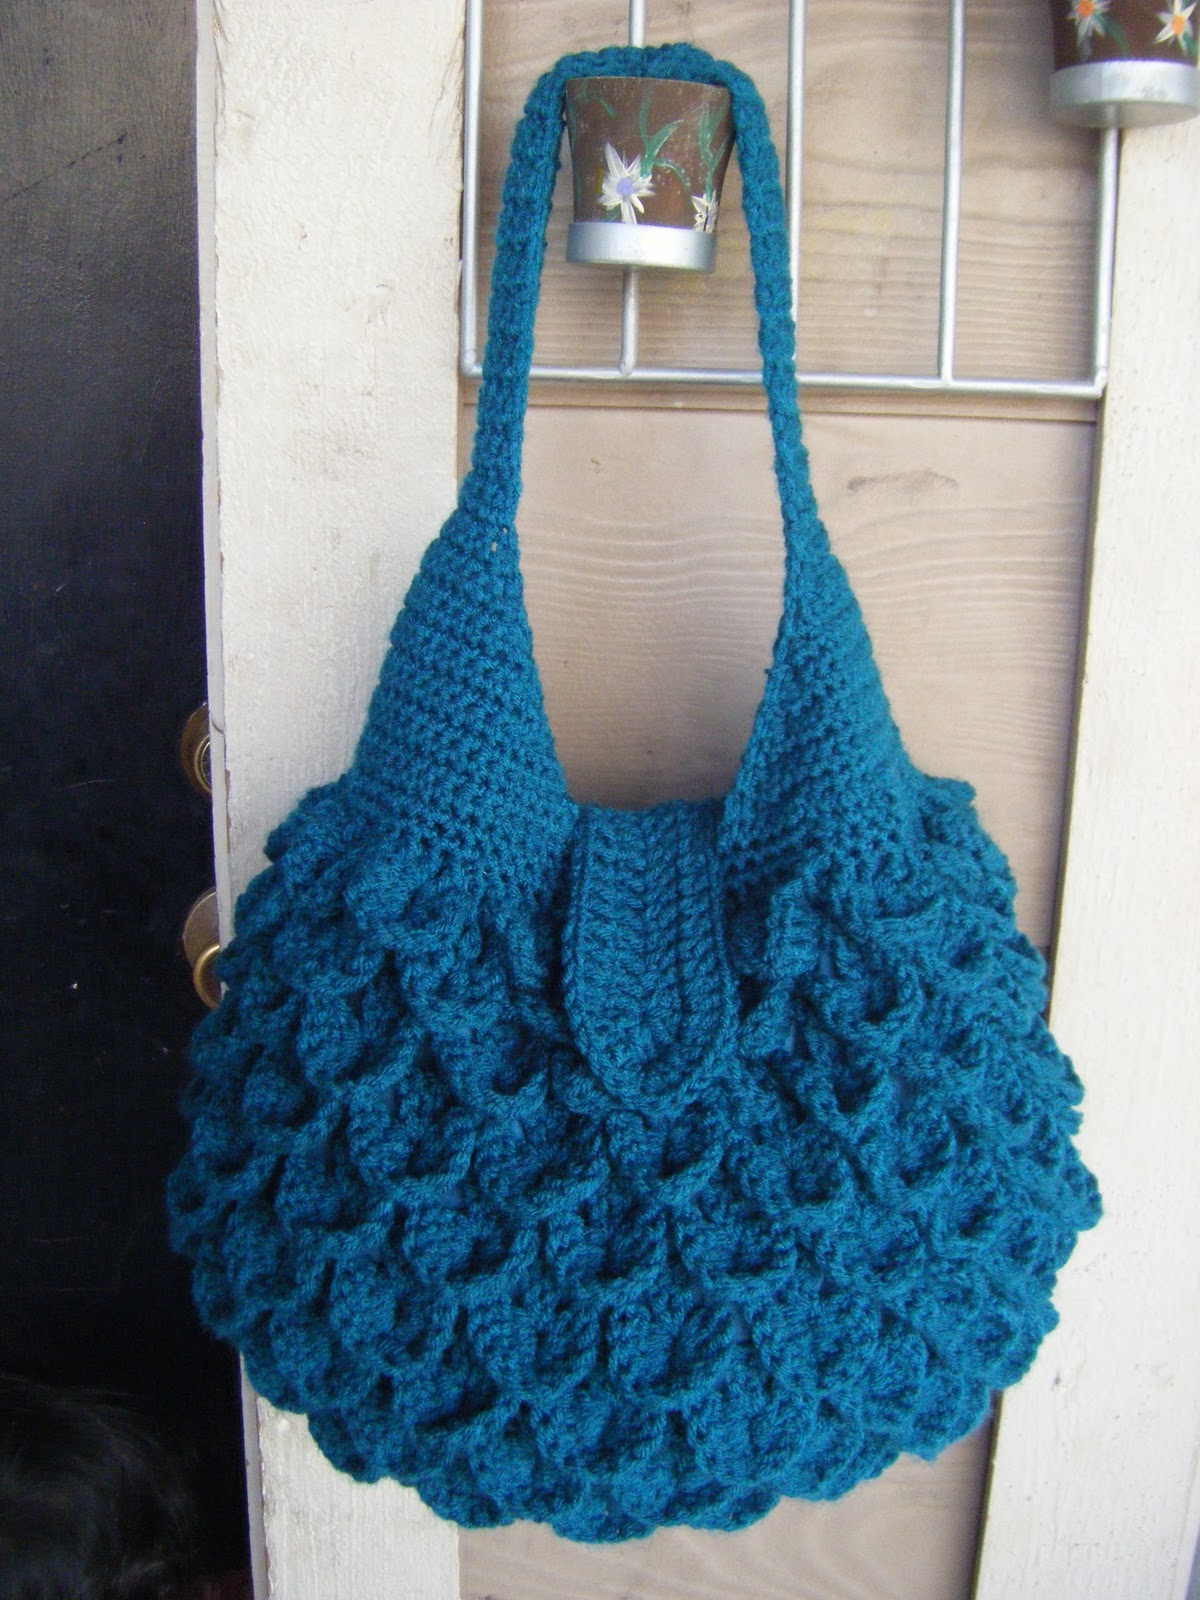 Free Crochet Bag : Six Free Crochet Bag Patterns PRLog - Free Press Release